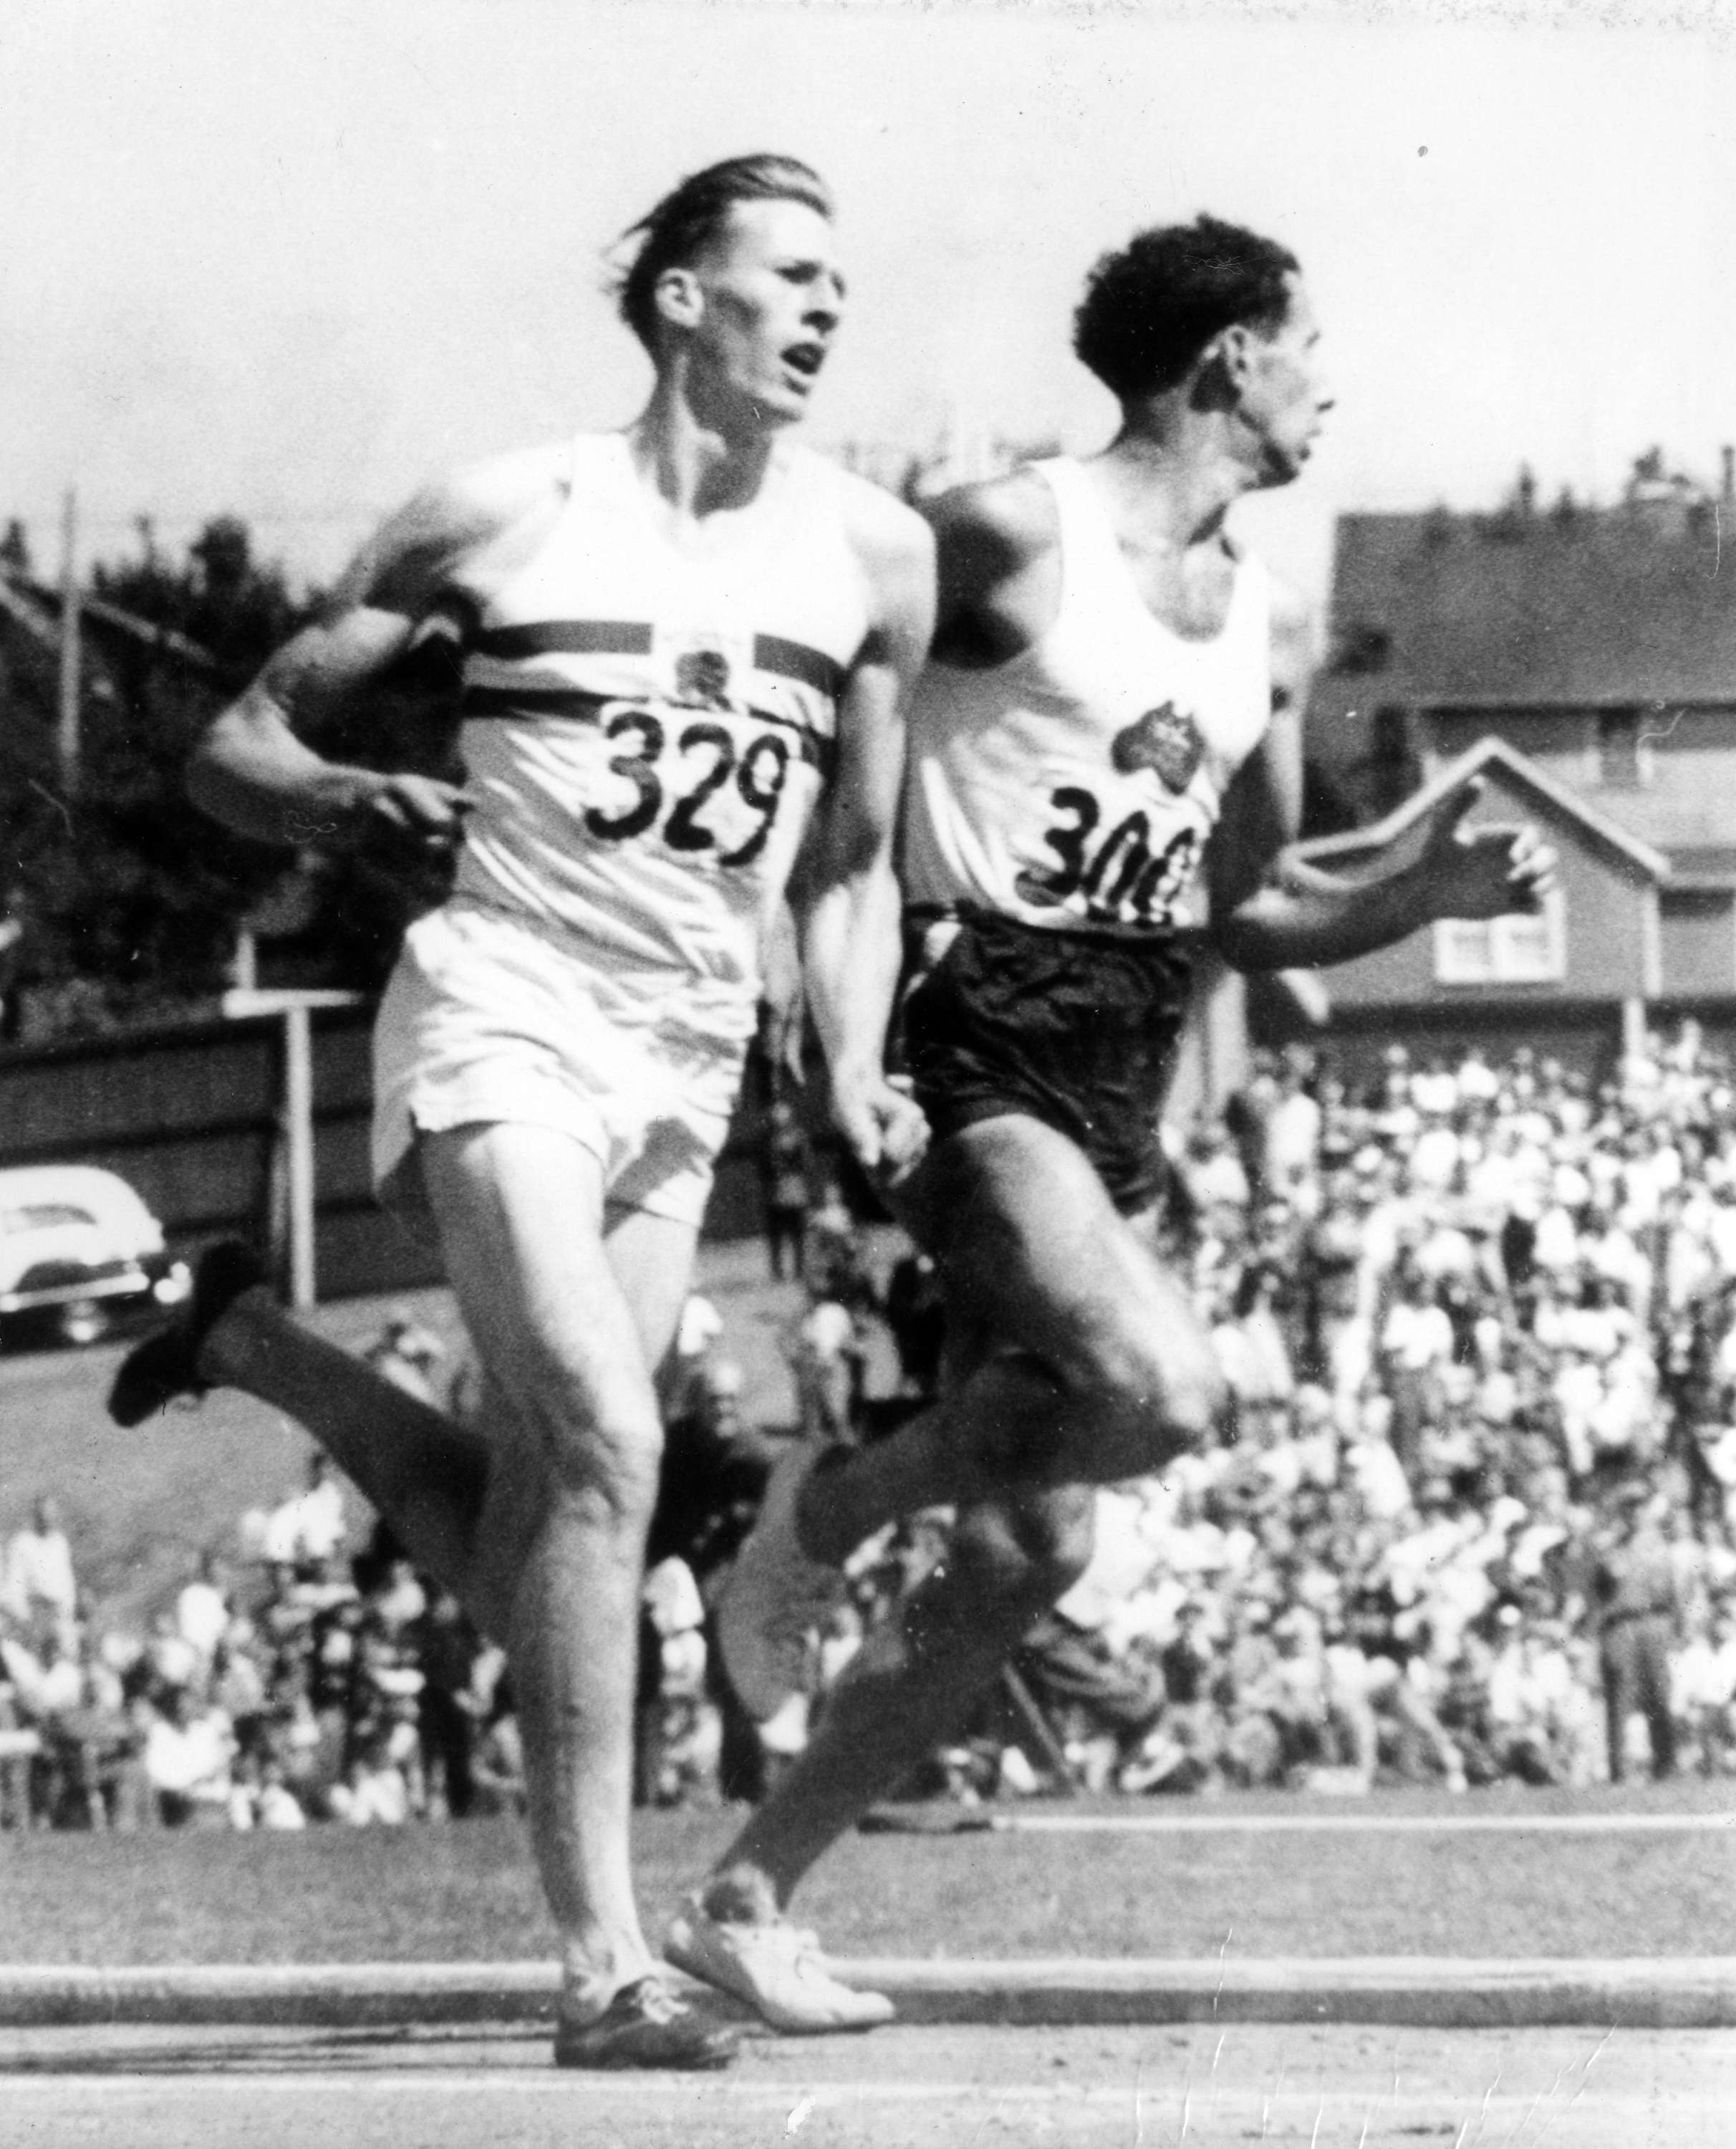 Roger Bannister And John Landy In The Miracle Mile Race In